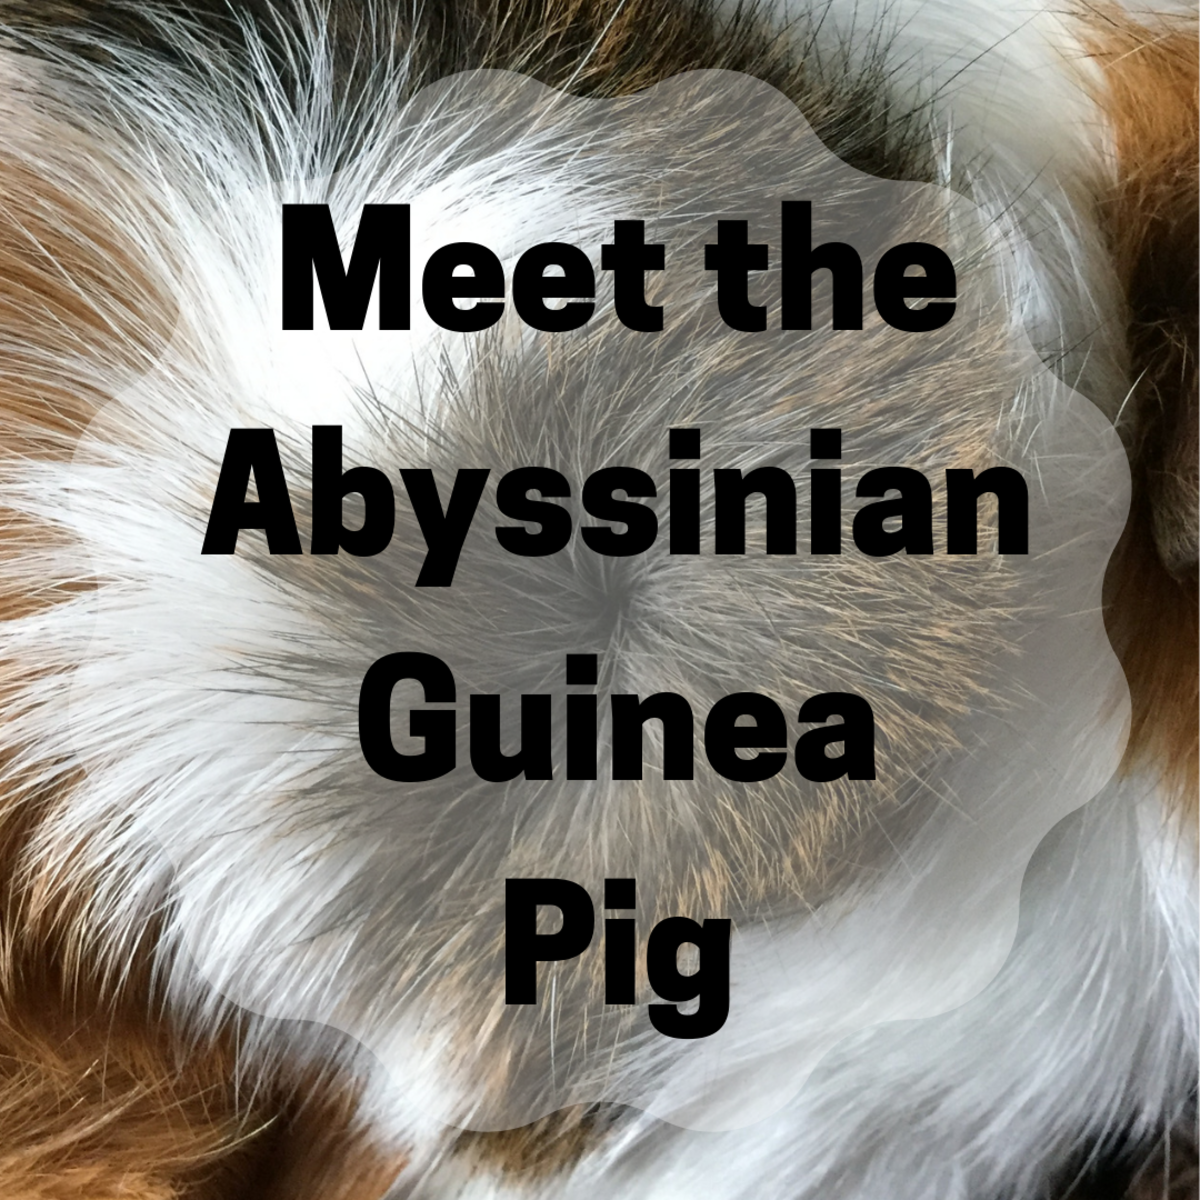 All About Abyssinian Guinea Pigs: Personality, History, and Care